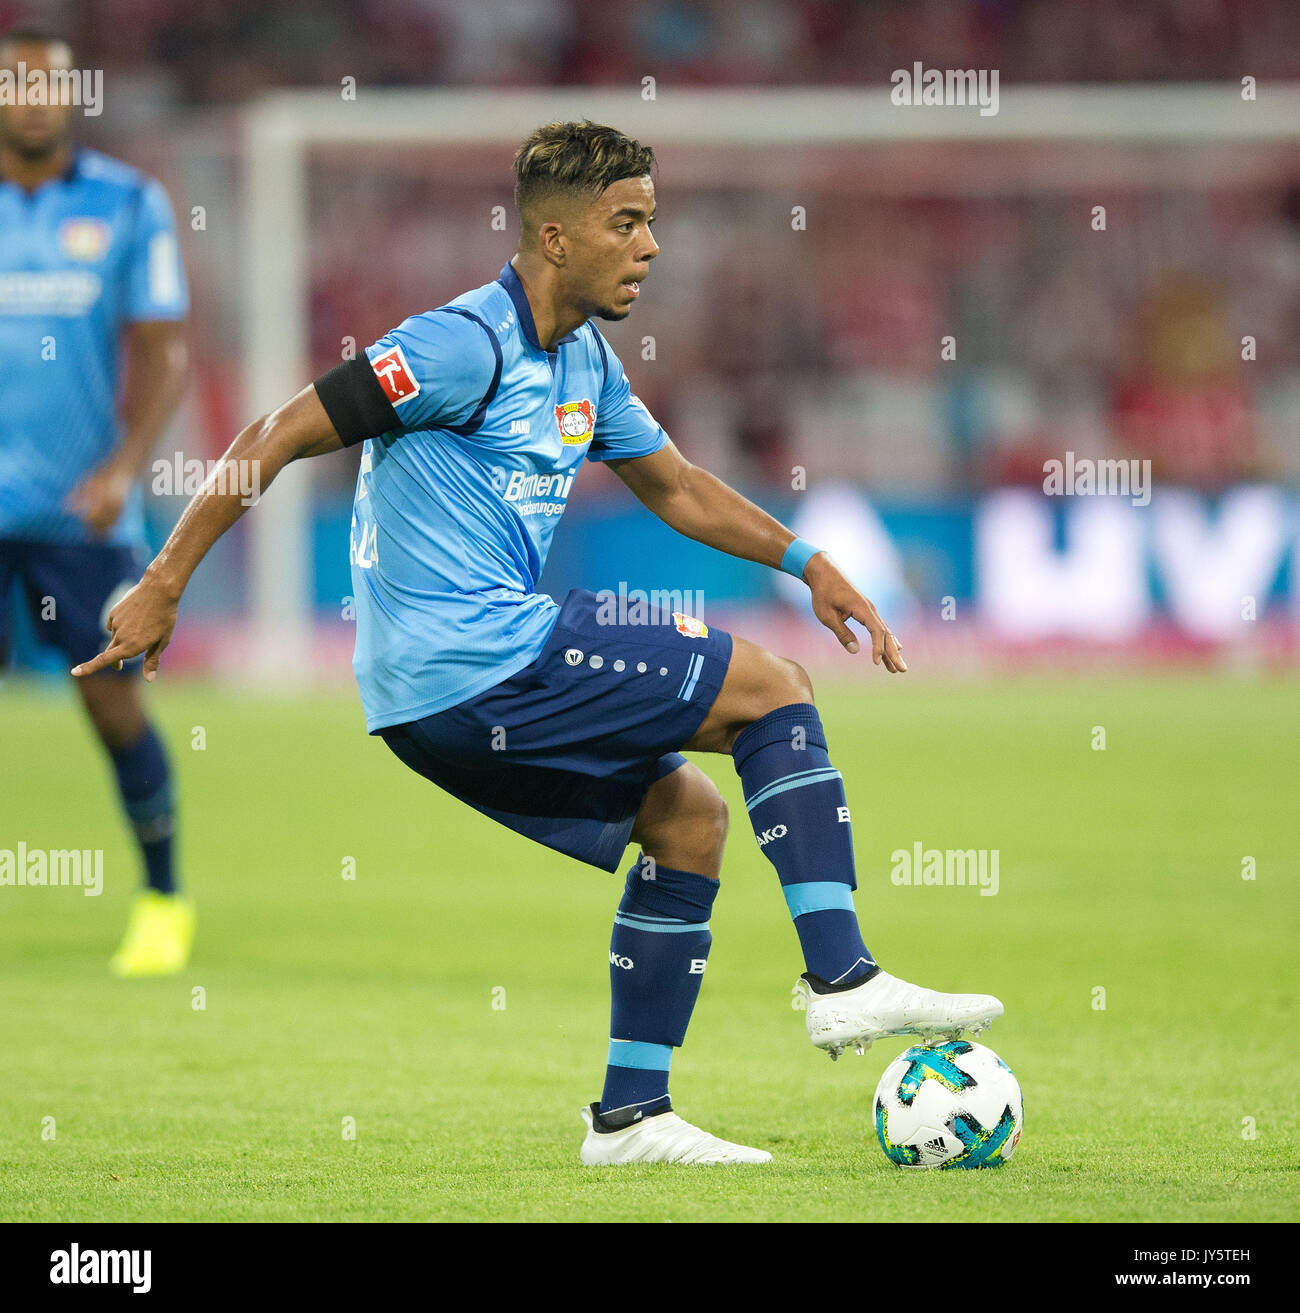 Deutschland. 18th Aug, 2017. Benjamin HENRICHS (Leverkusen) mit Ball, Einzelaktion GES/ Fussball/ 1. Bundesliga: FC Bayern Munich - Bayer 04 Leverkusen, 18.08.2017 -- Football/ Soccer 1st. German Bundesliga Division: Bavaria Munich vs Bayer 04 Leverkusen, Munich, August 18, 2017 | Verwendung weltweit Credit: dpa/Alamy Live News - Stock Image